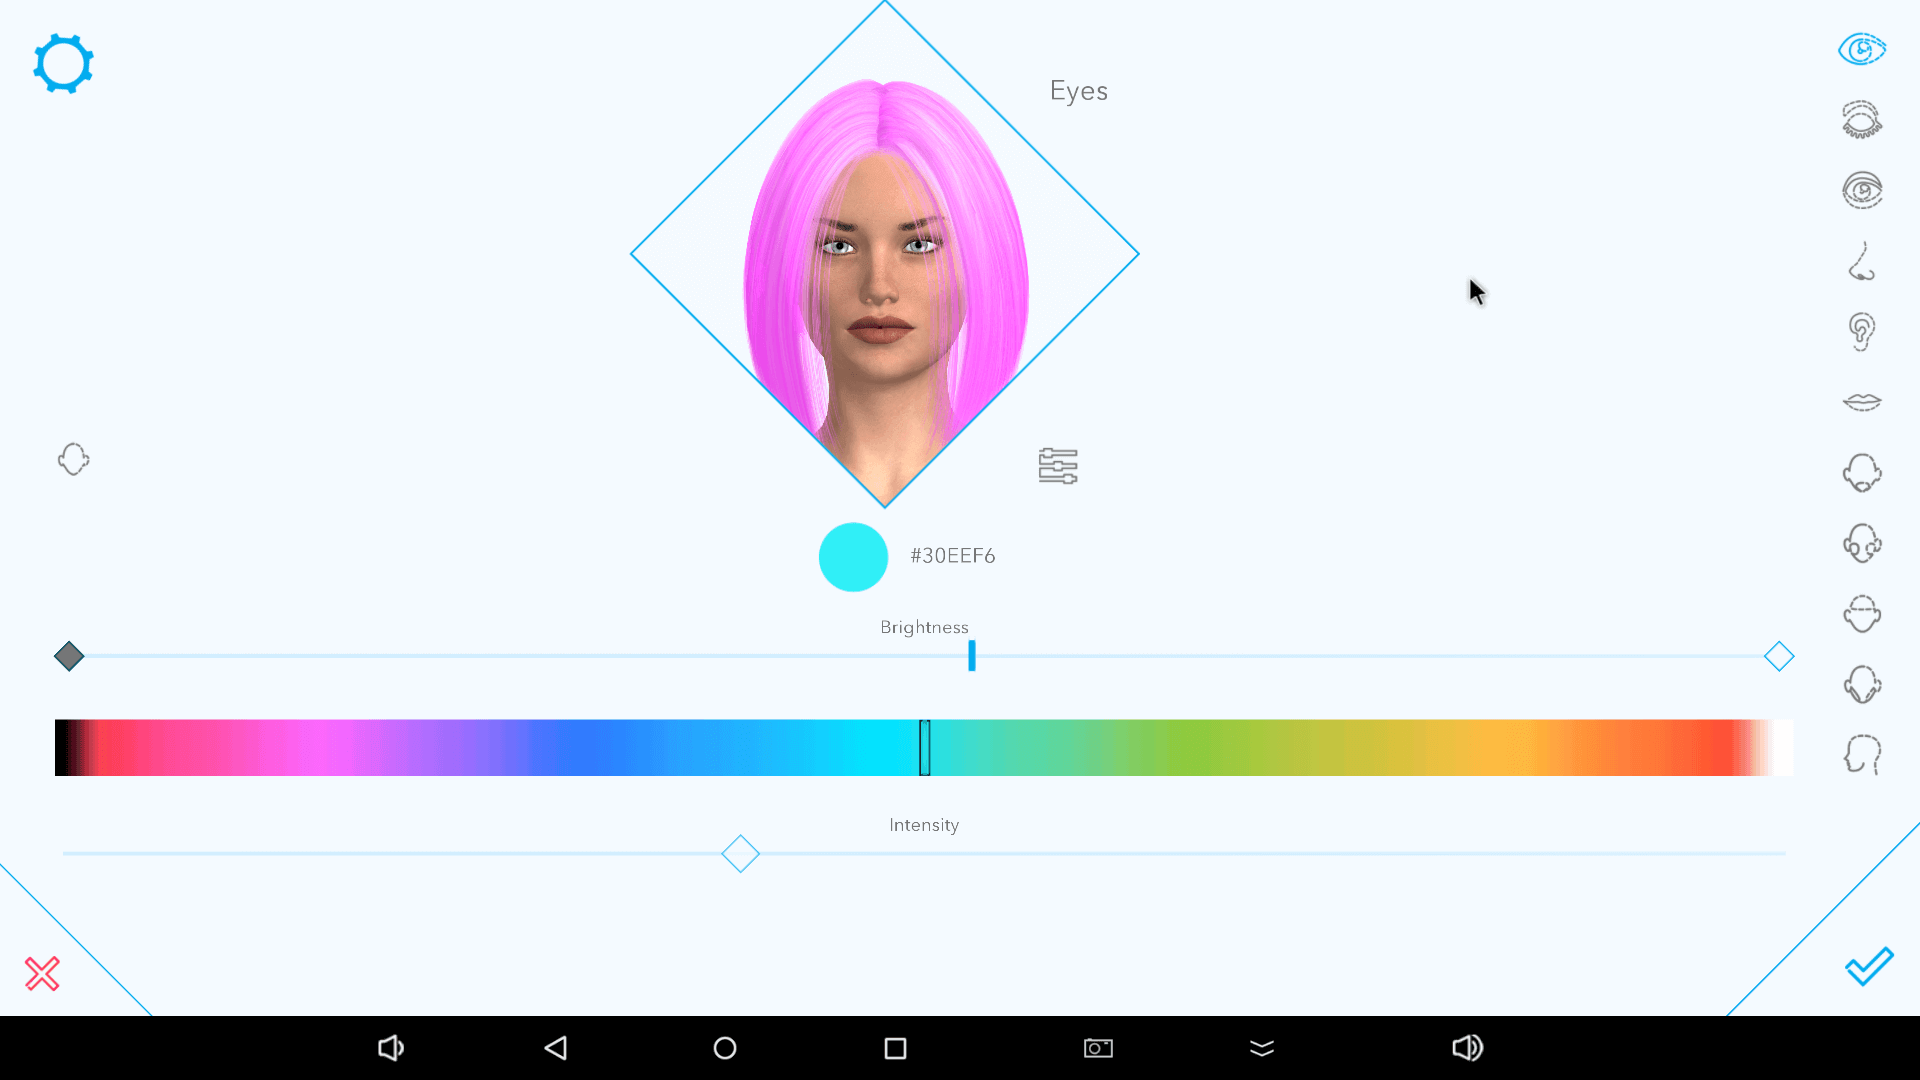 Picking eye color on Harmony AI app.